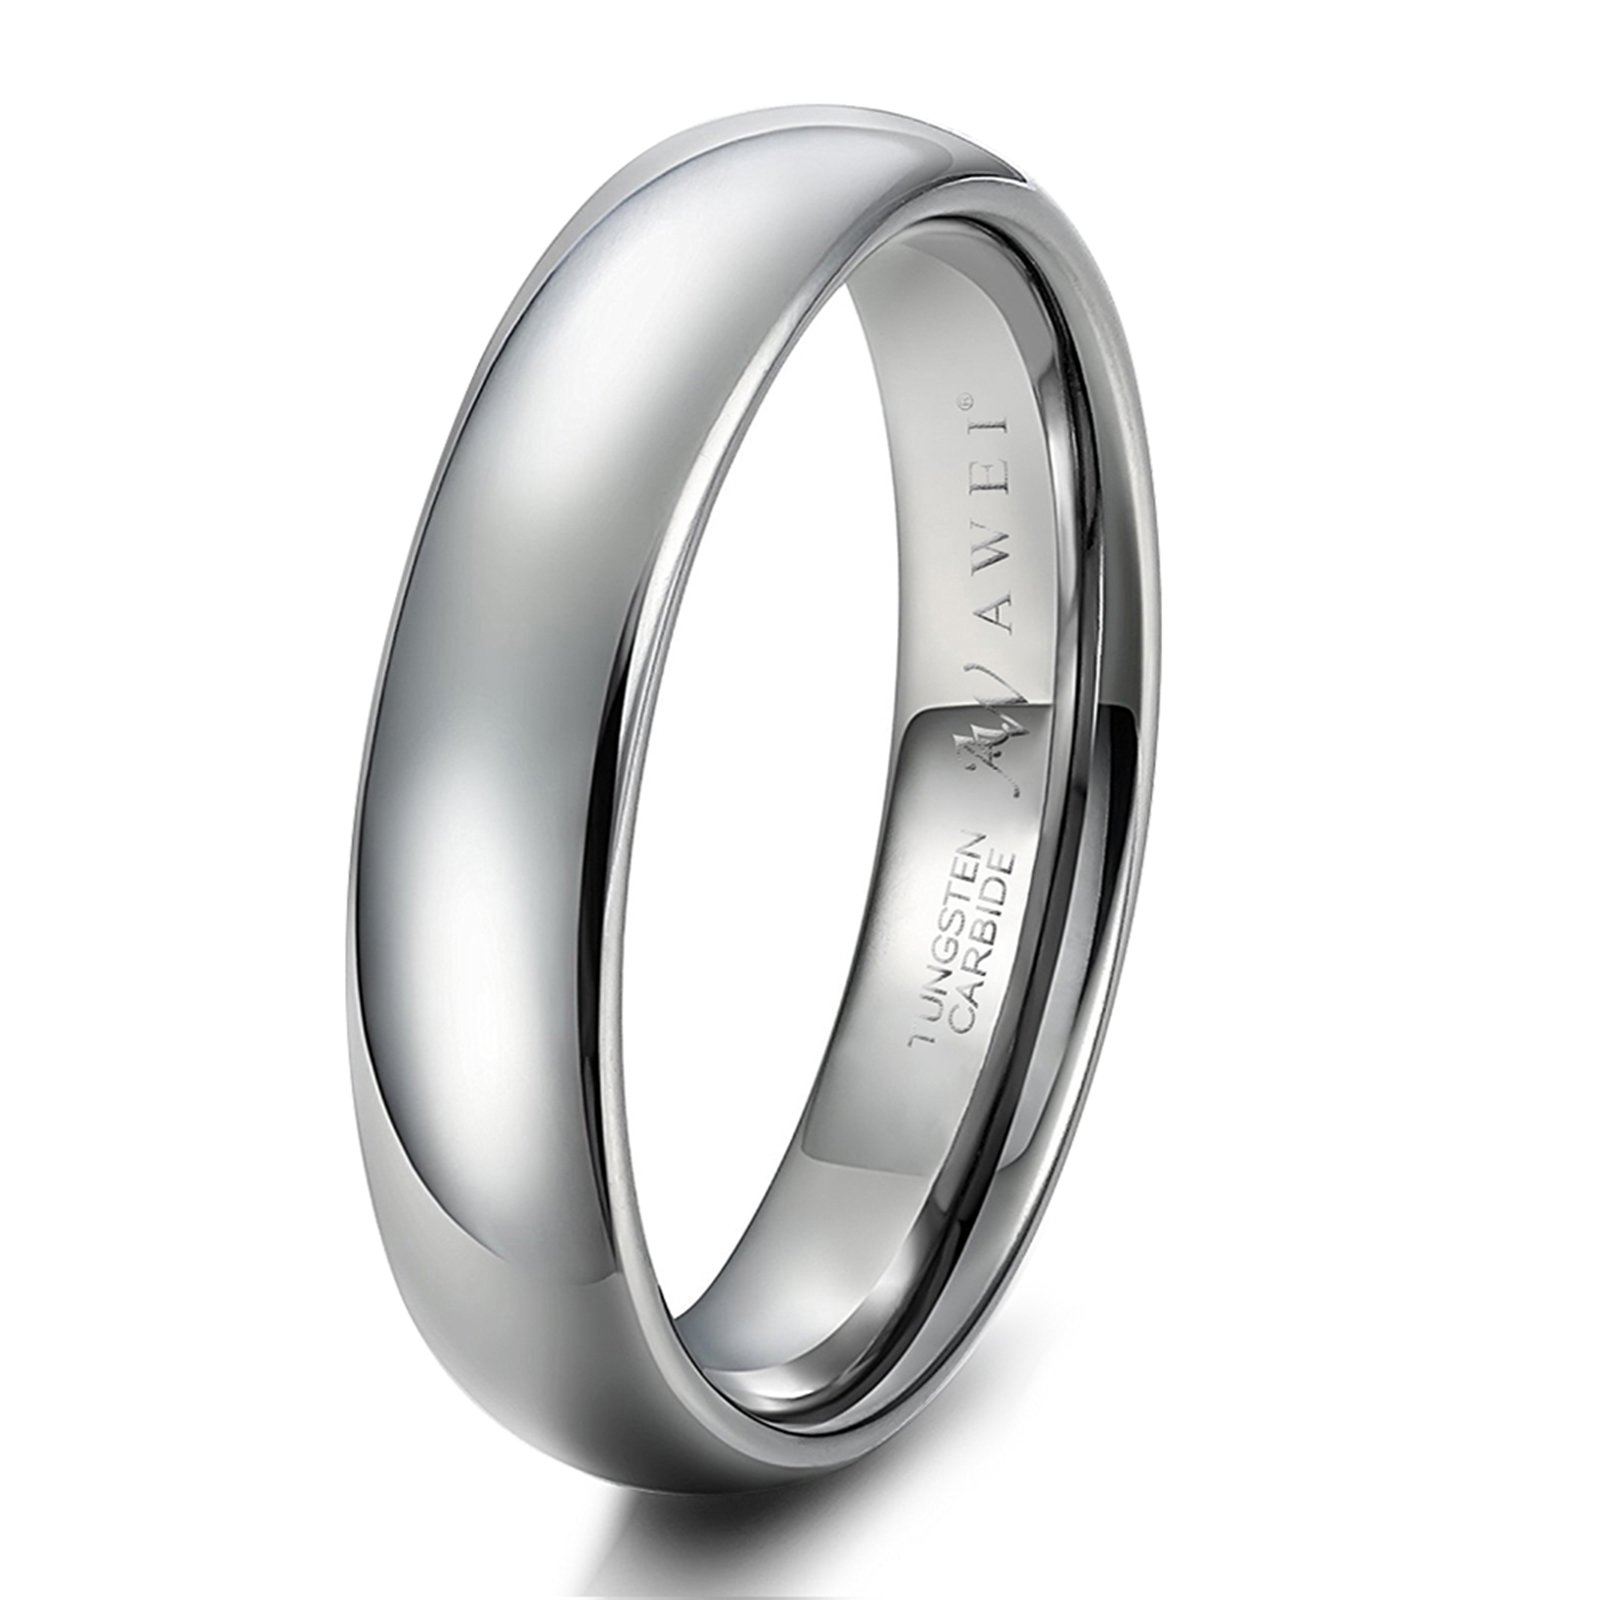 AWEI Comfort Fit Domed Tungsten Carbide Ring Classic Wedding Band Engagement Ring, Silver Color, 5mm Size 8